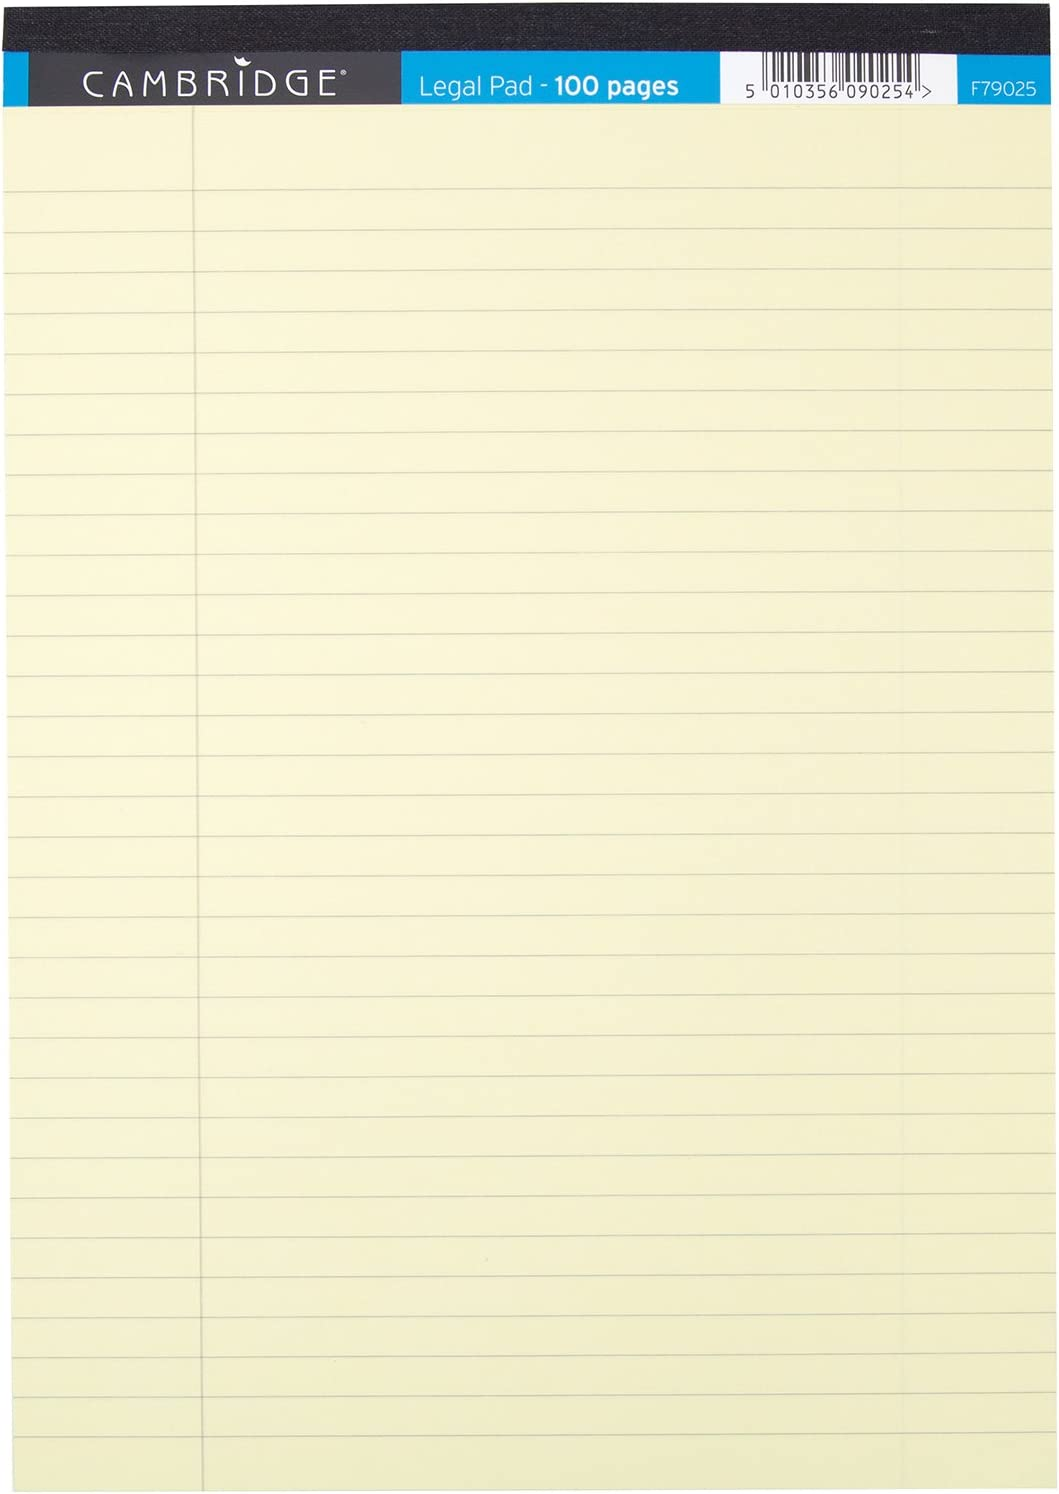 MARGIN F79025 10 CAMBRIDGE YELLOW A4 LEGAL PADS LINED